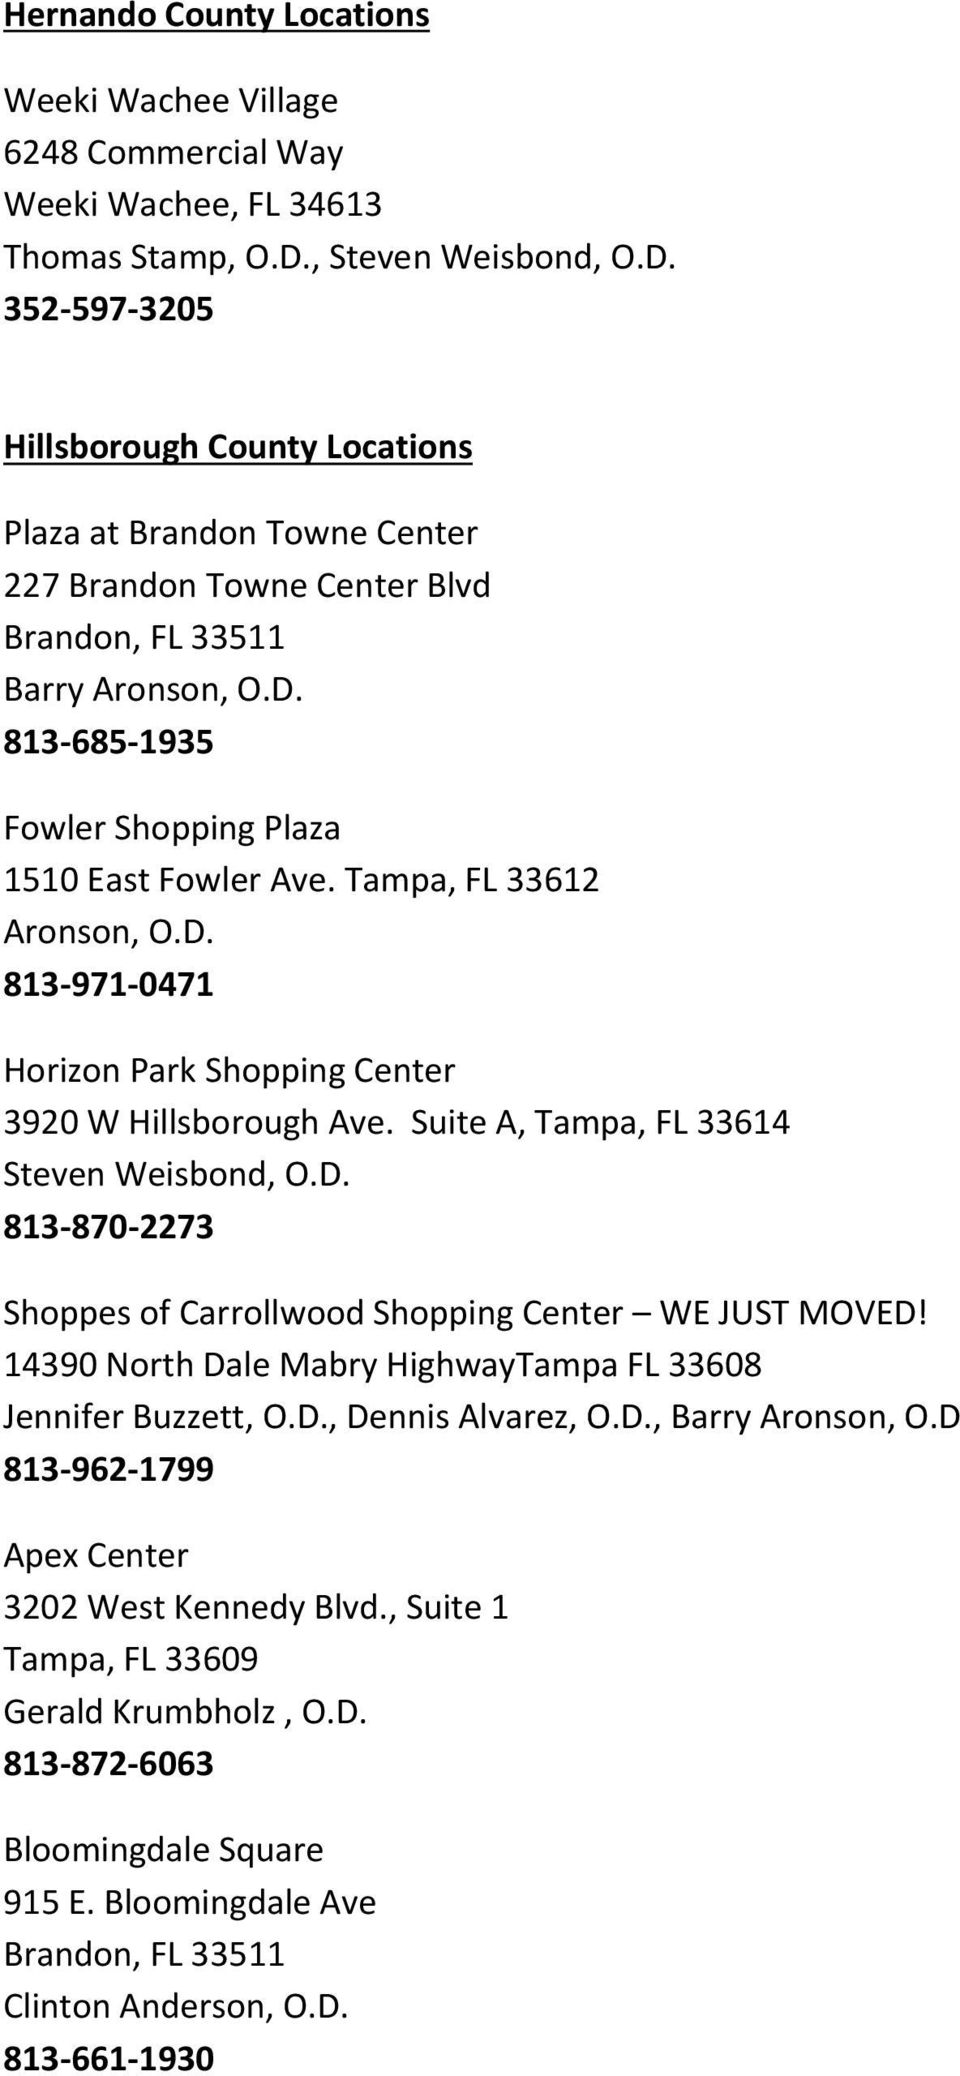 Tampa, FL 33612 Aronson, O.D. 813 971 0471 Horizon Park Shopping Center 3920 W Hillsborough Ave. Suite A, Tampa, FL 33614 Steven Weisbond, O.D. 813 870 2273 Shoppes of Carrollwood Shopping Center WE JUST MOVED!